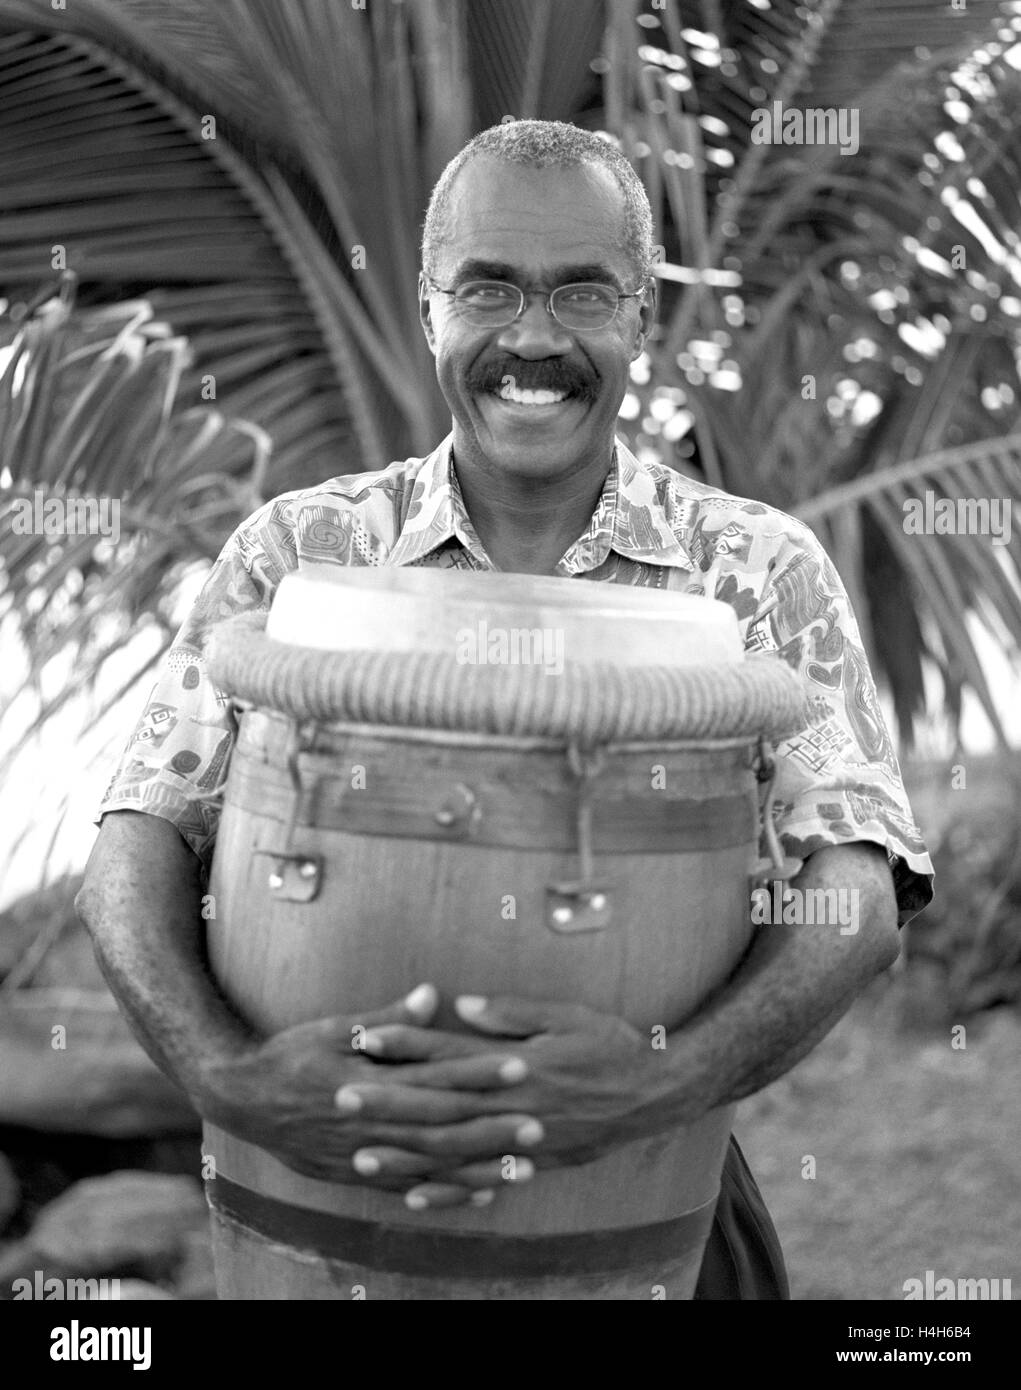 A Belle drummer hugs his drum in happiness. Fort de France, Martinique. Caribbean. - Stock Image